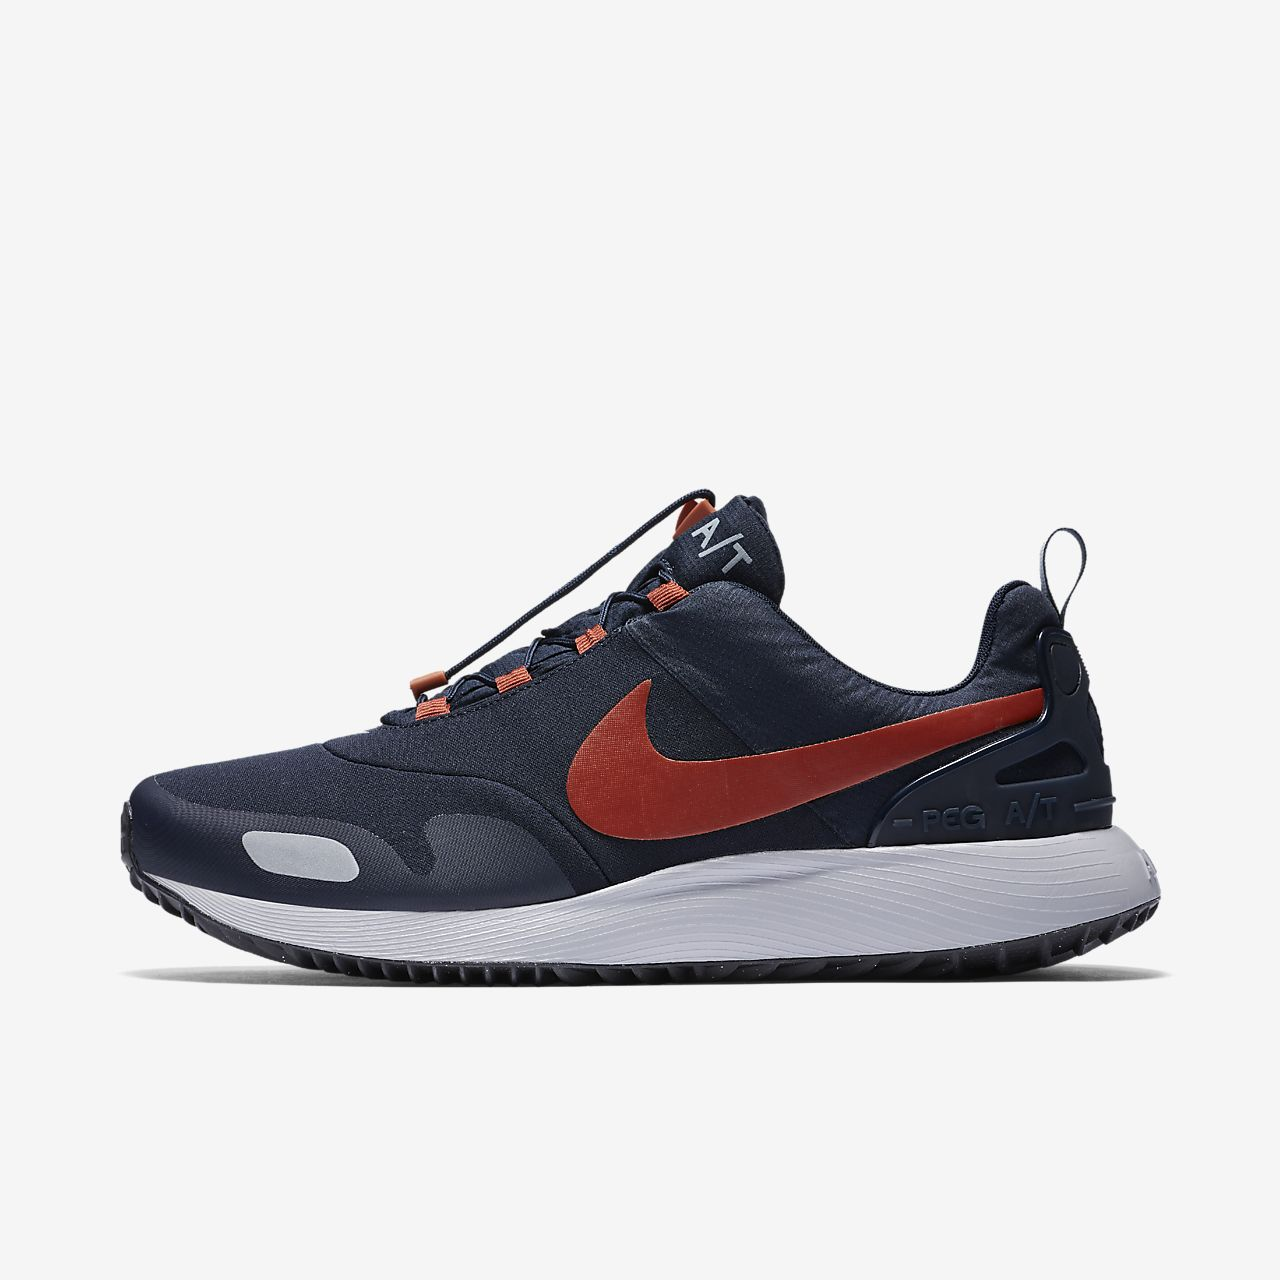 Best Selling Nike Air Pegasus New Racer - Stone Shop No.56121607